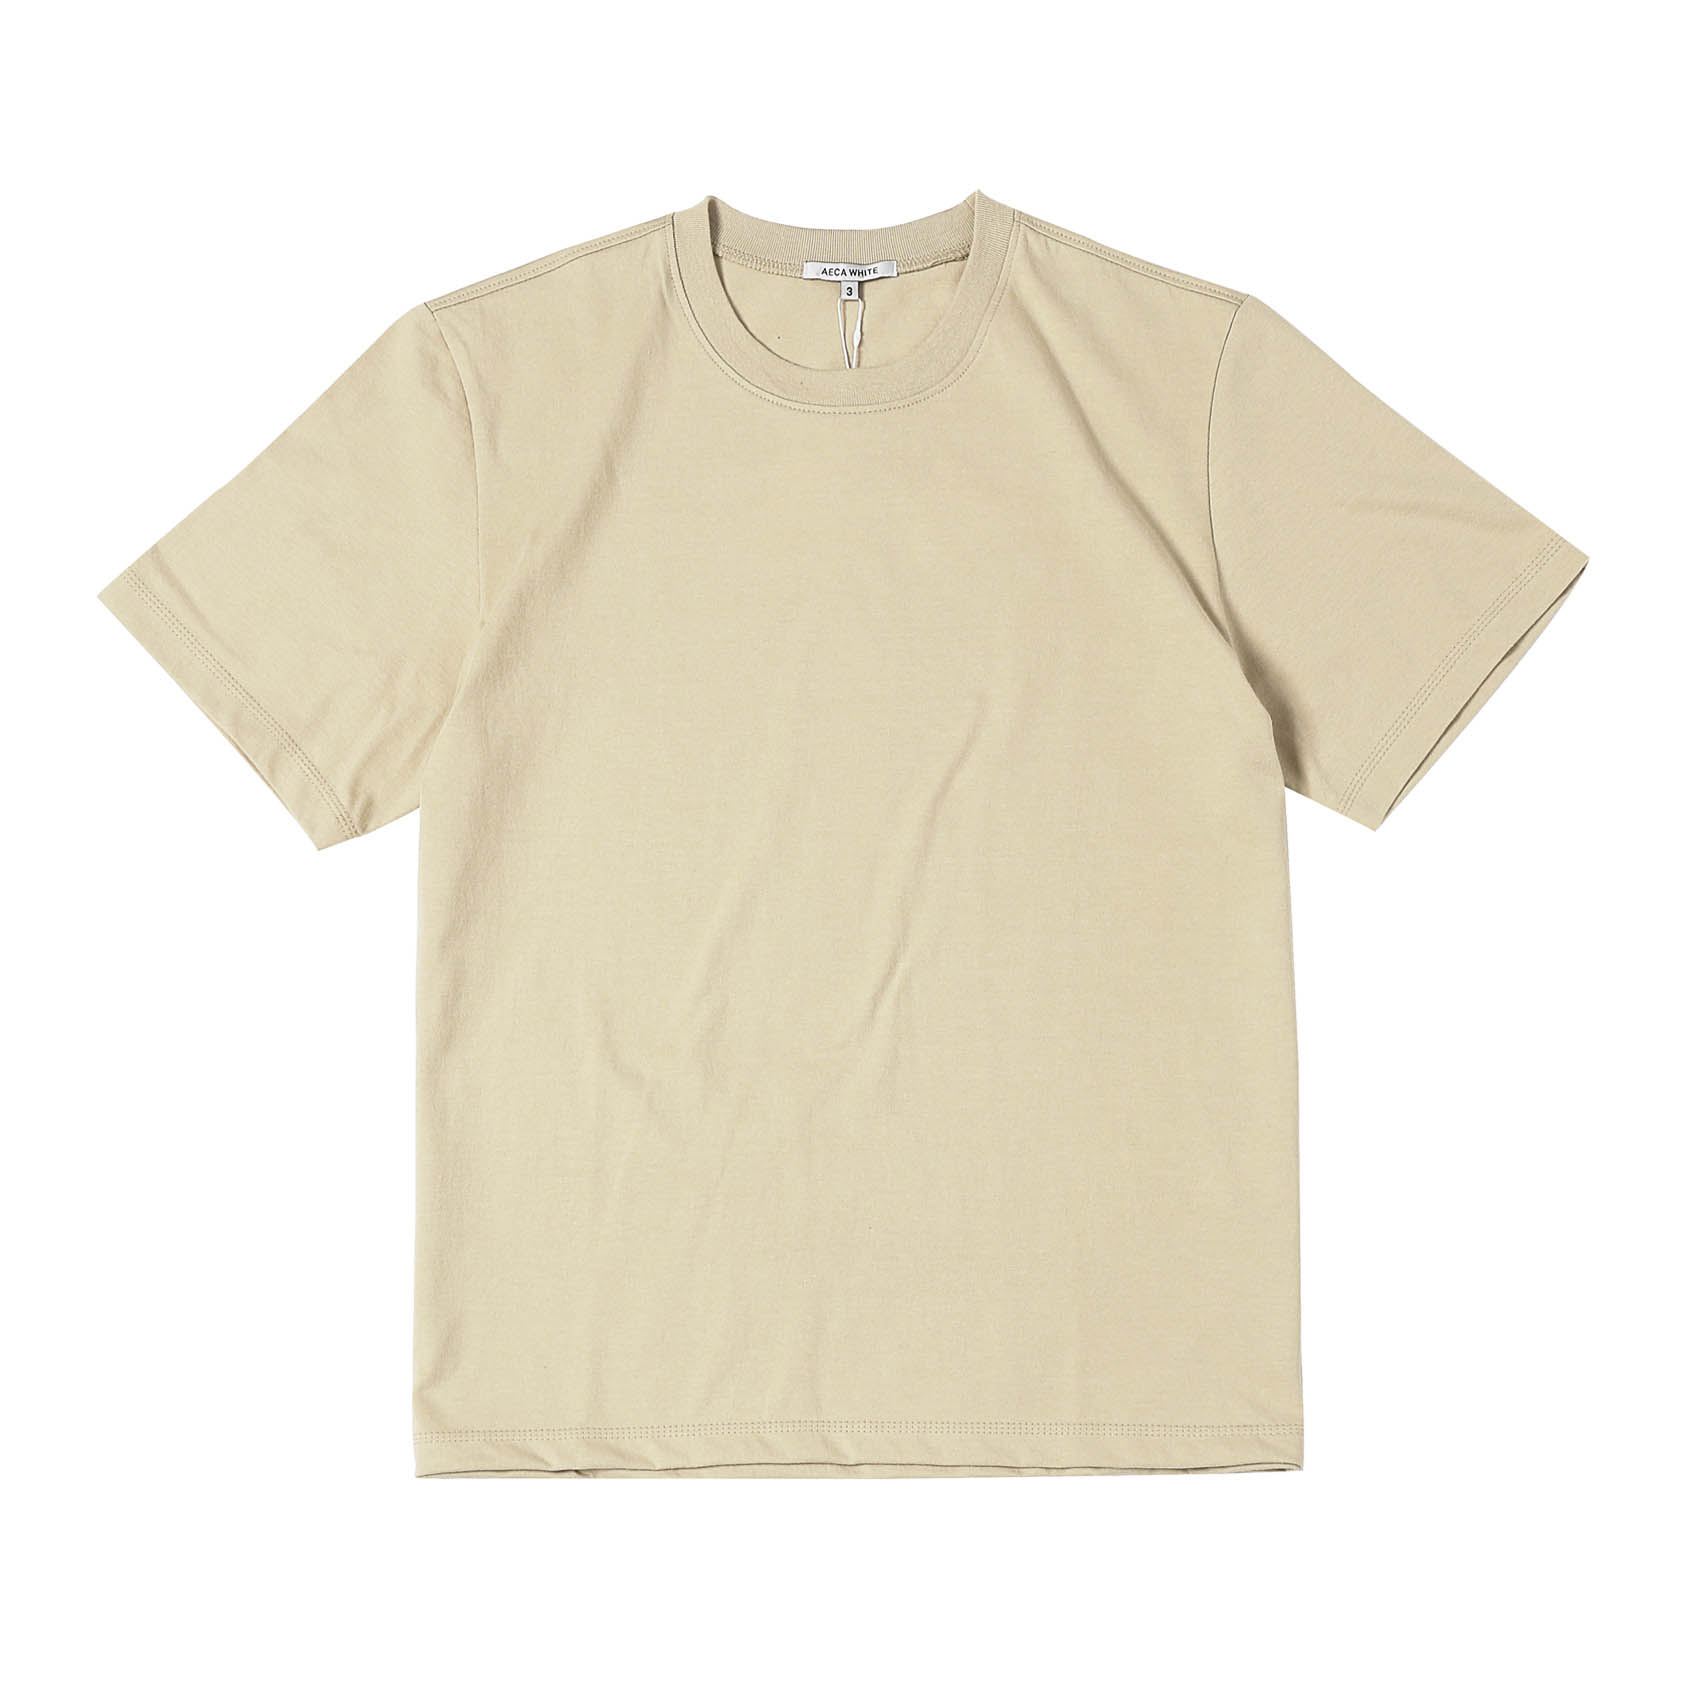 FINEST COTTON HALF SLEEVE TEE - BEIGE